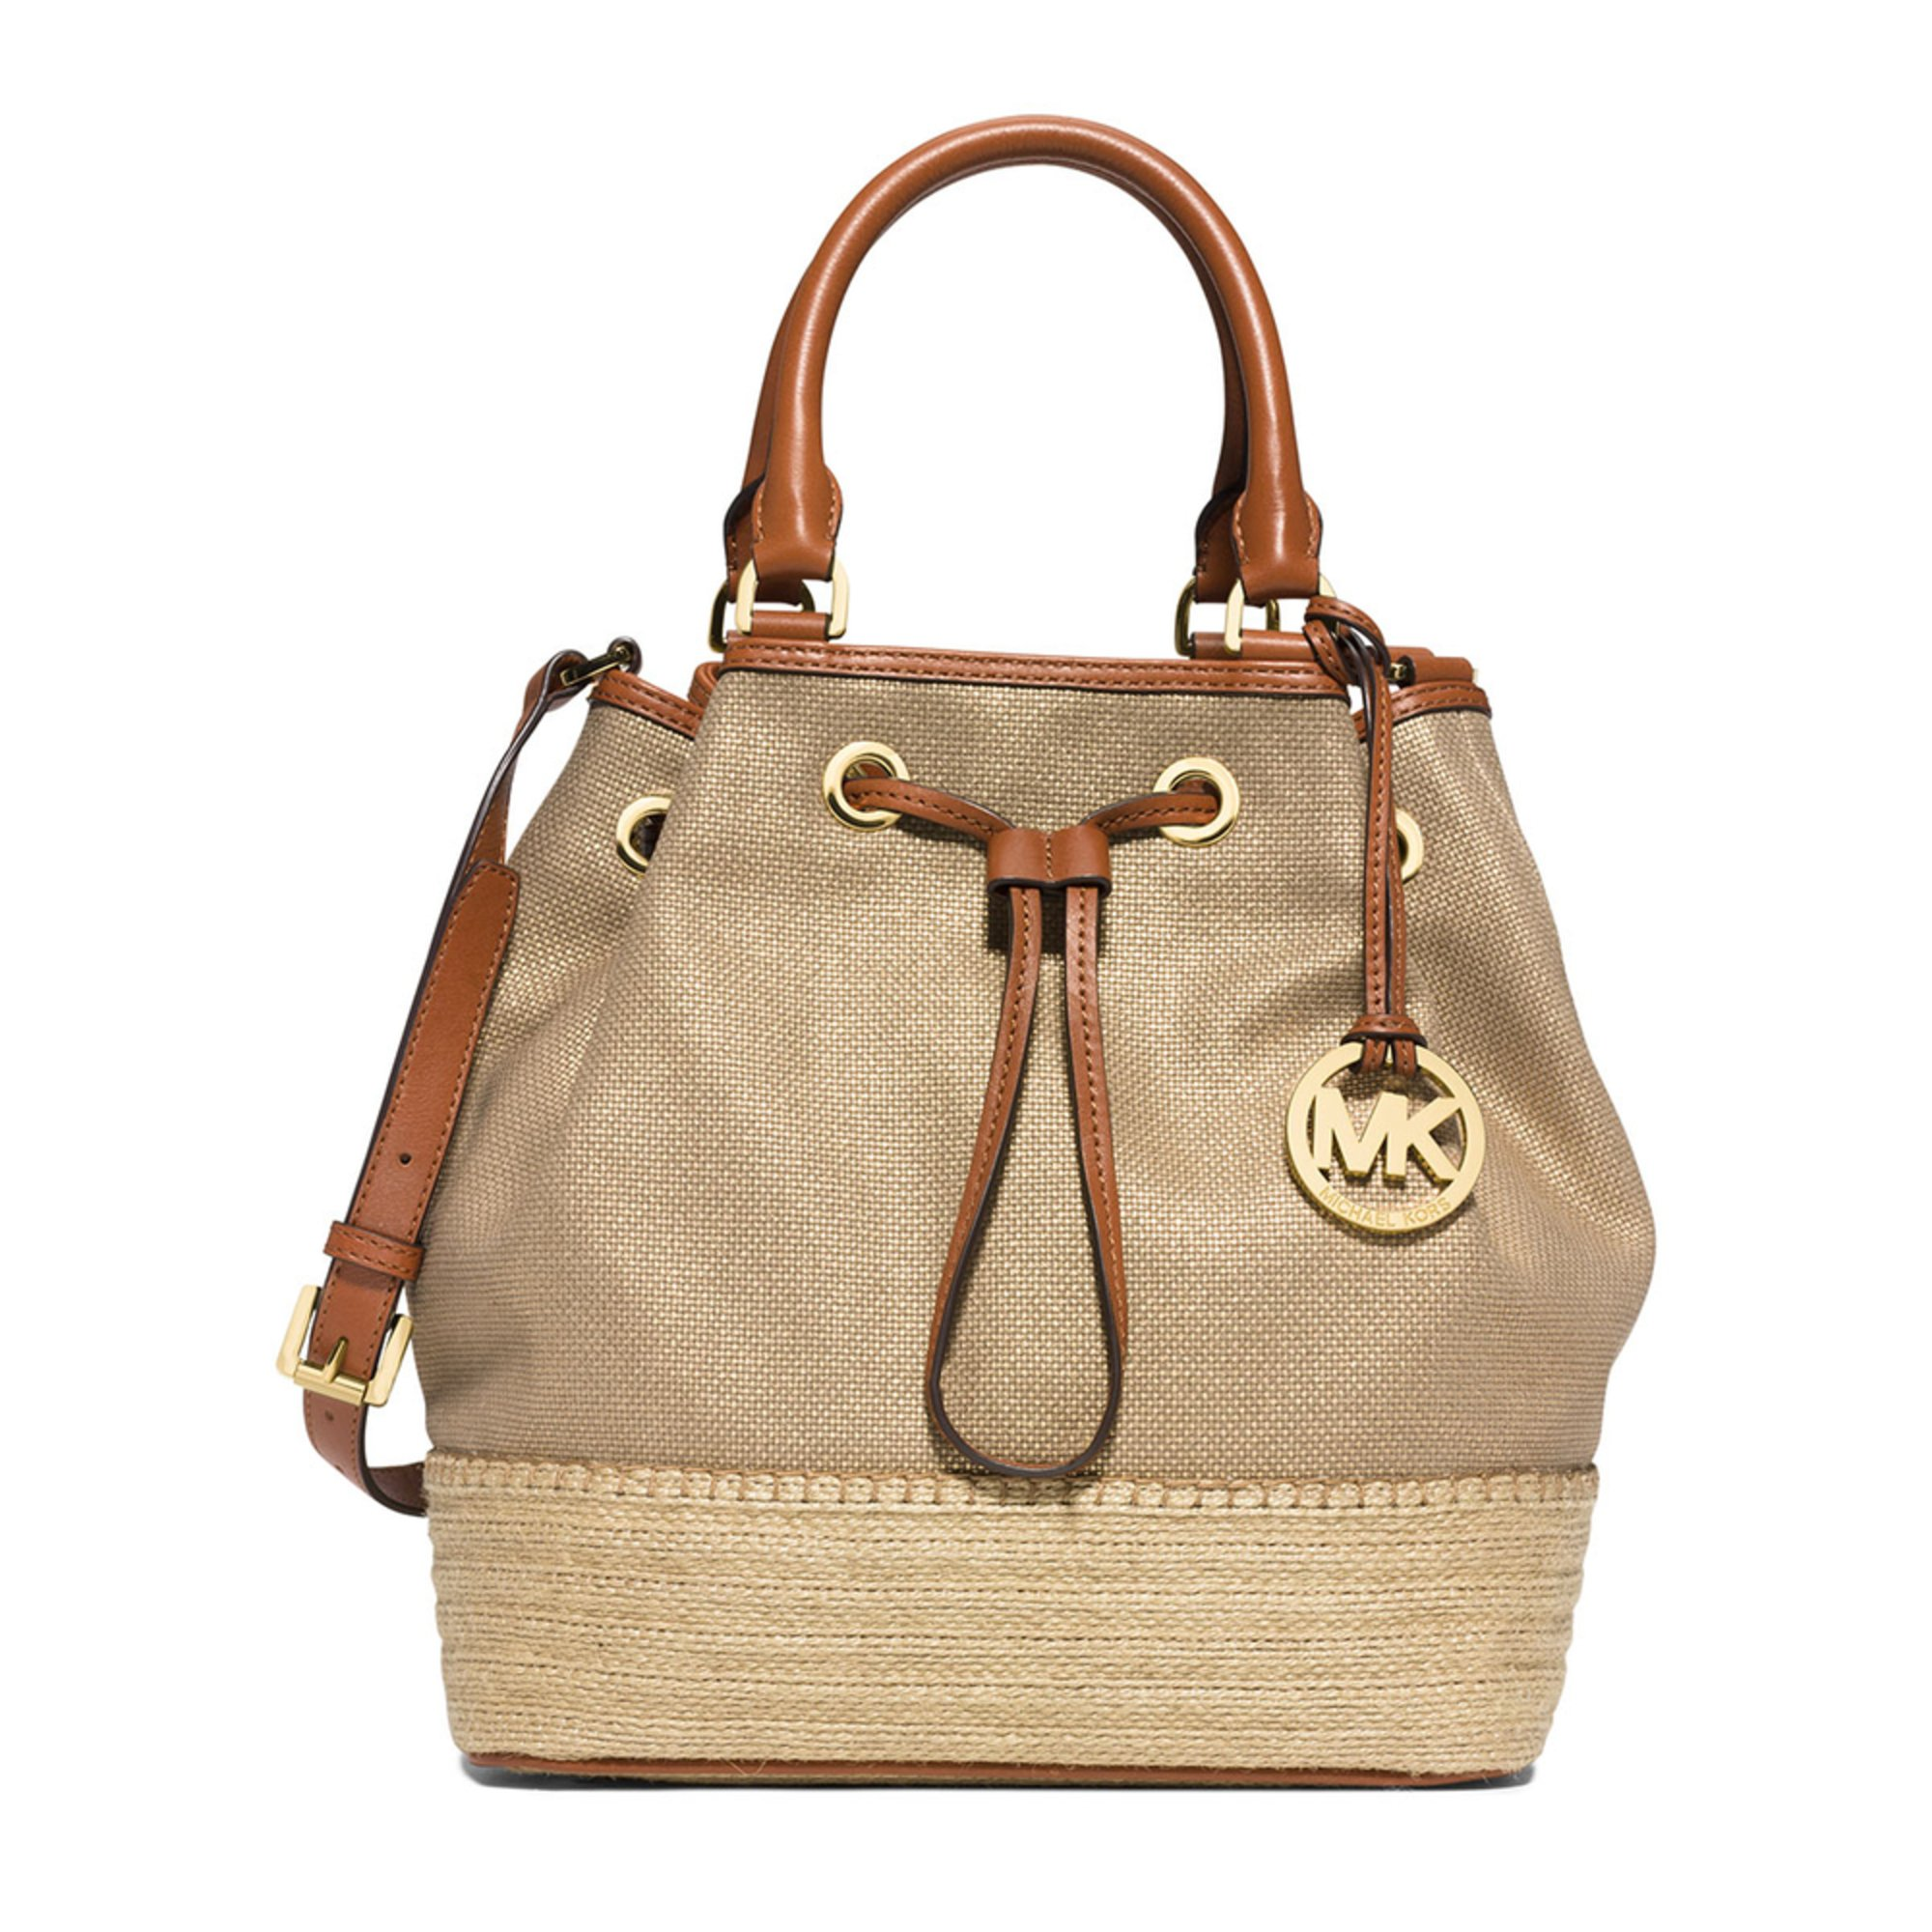 Shop the official Michael Kors USA online shop for jet set luxury: designer handbags, watches, shoes, clothing & more. Receive free shipping and returns on your purchase.